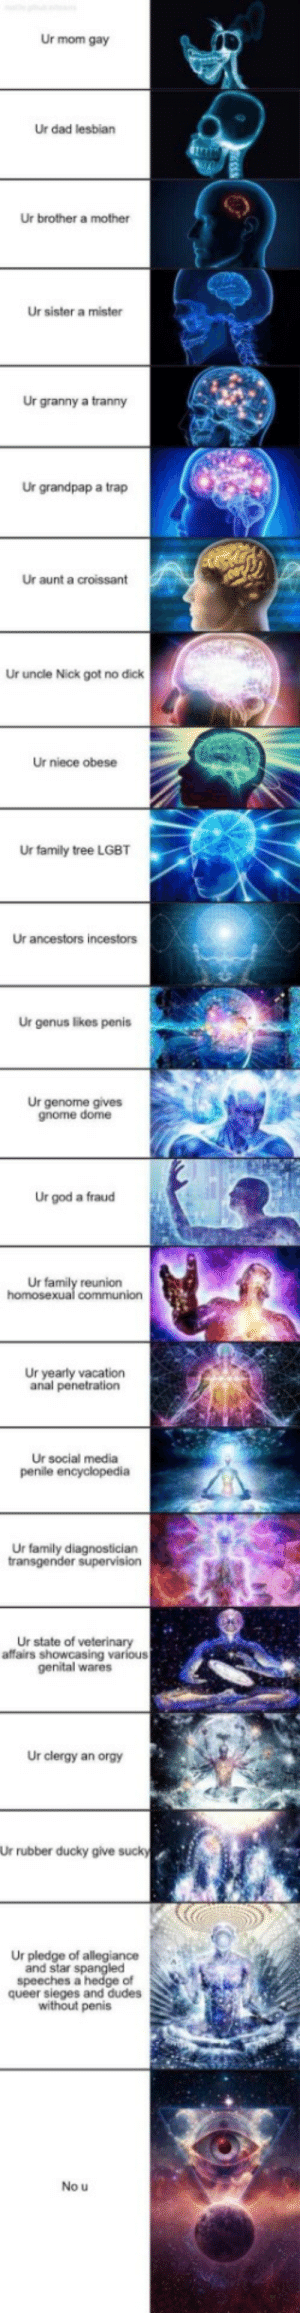 I laugh every time: Ur mom gay  Ur dad lesbian  Ur brother a mother  Ur sister a mister  Ur granny a tranny  Ur grandpap a trap  Ur aunt a croissant  Ur uncle Nick got no dick  Ur niece obese  Ur family tree LGBT  Ur ancestors incestors  Ur genus likes penis  Ur genome gives  gnome dome  Ur god a fraud  Ur family reunion  homosexual communion  Ur yearly vacation  anal penetration  Ur social media  penile encyclopedia  Ur family diagnostician  transgender supervision  Ur state of veterinary  affairs showcasing various  genital wares  Ur clergy an orgy  Ur rubber ducky give sucky  Ur pledge of allegiance  and star spangled  speeches a hedge of  queer sieges and dudes  without penis  No u I laugh every time